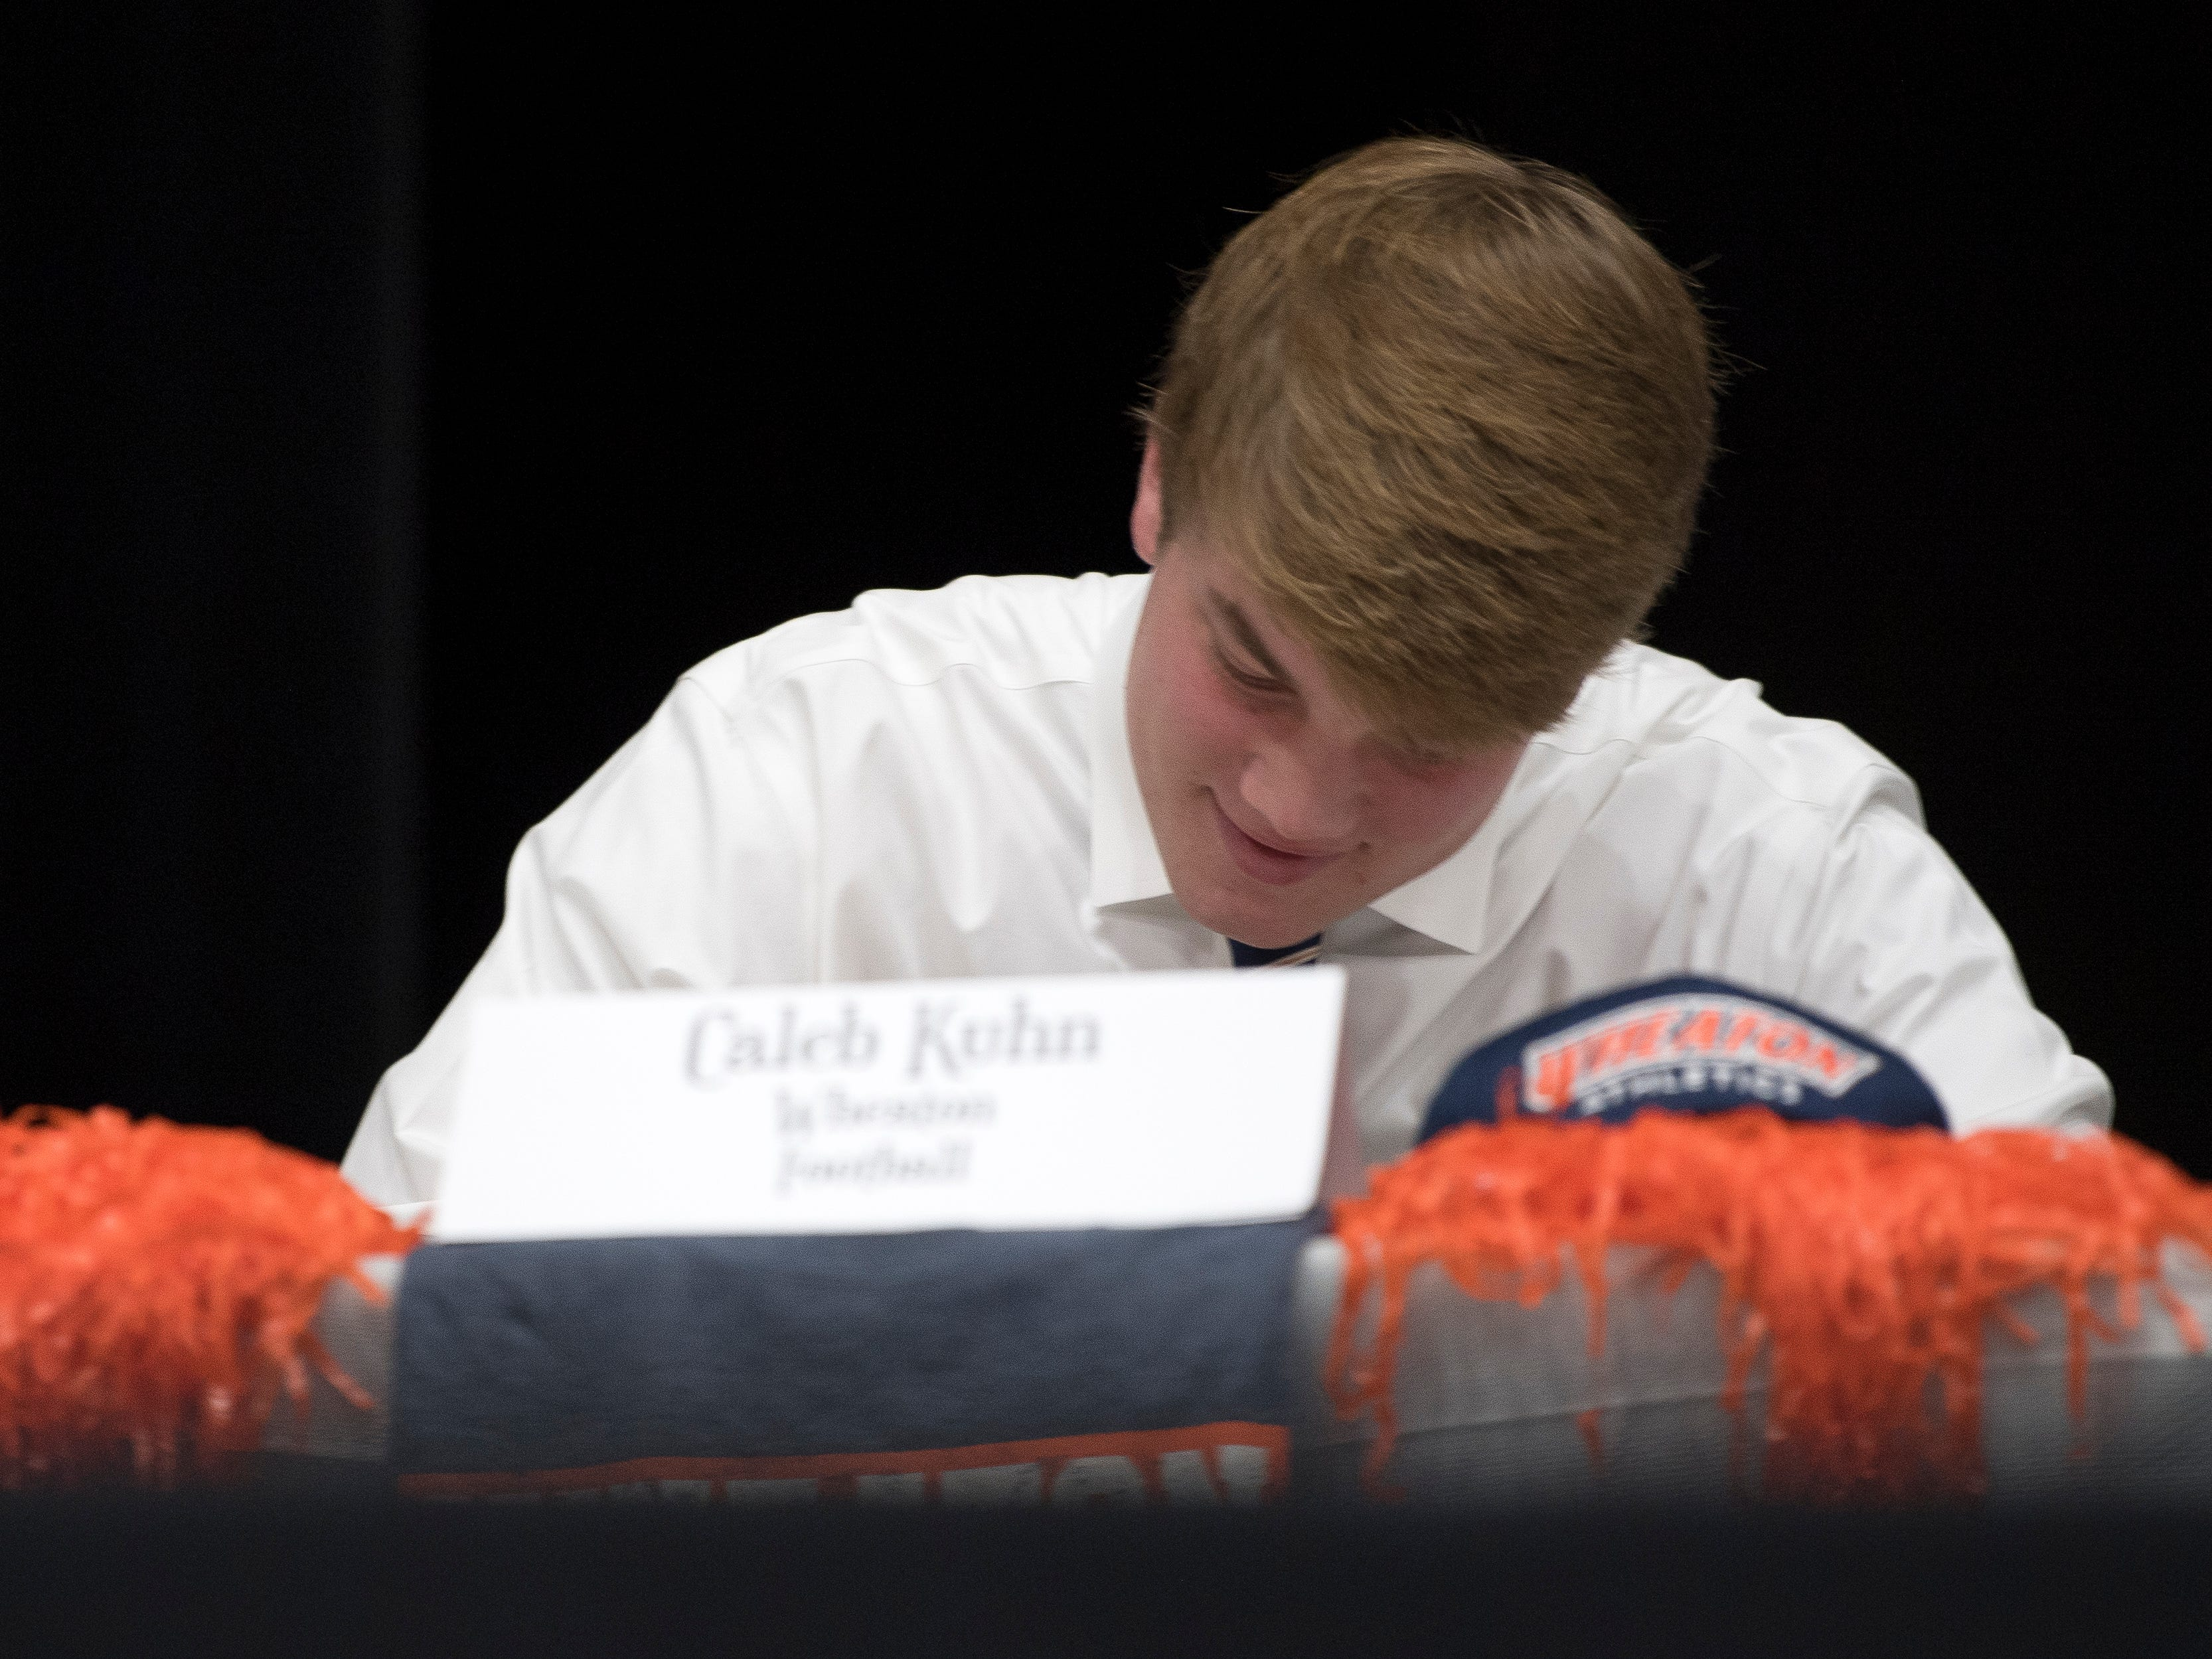 Farragut football player Caleb Kuhn signs with Wheaton College during a National Signing Day event at Farragut High's auditorium on Wednesday, February 6, 2019.